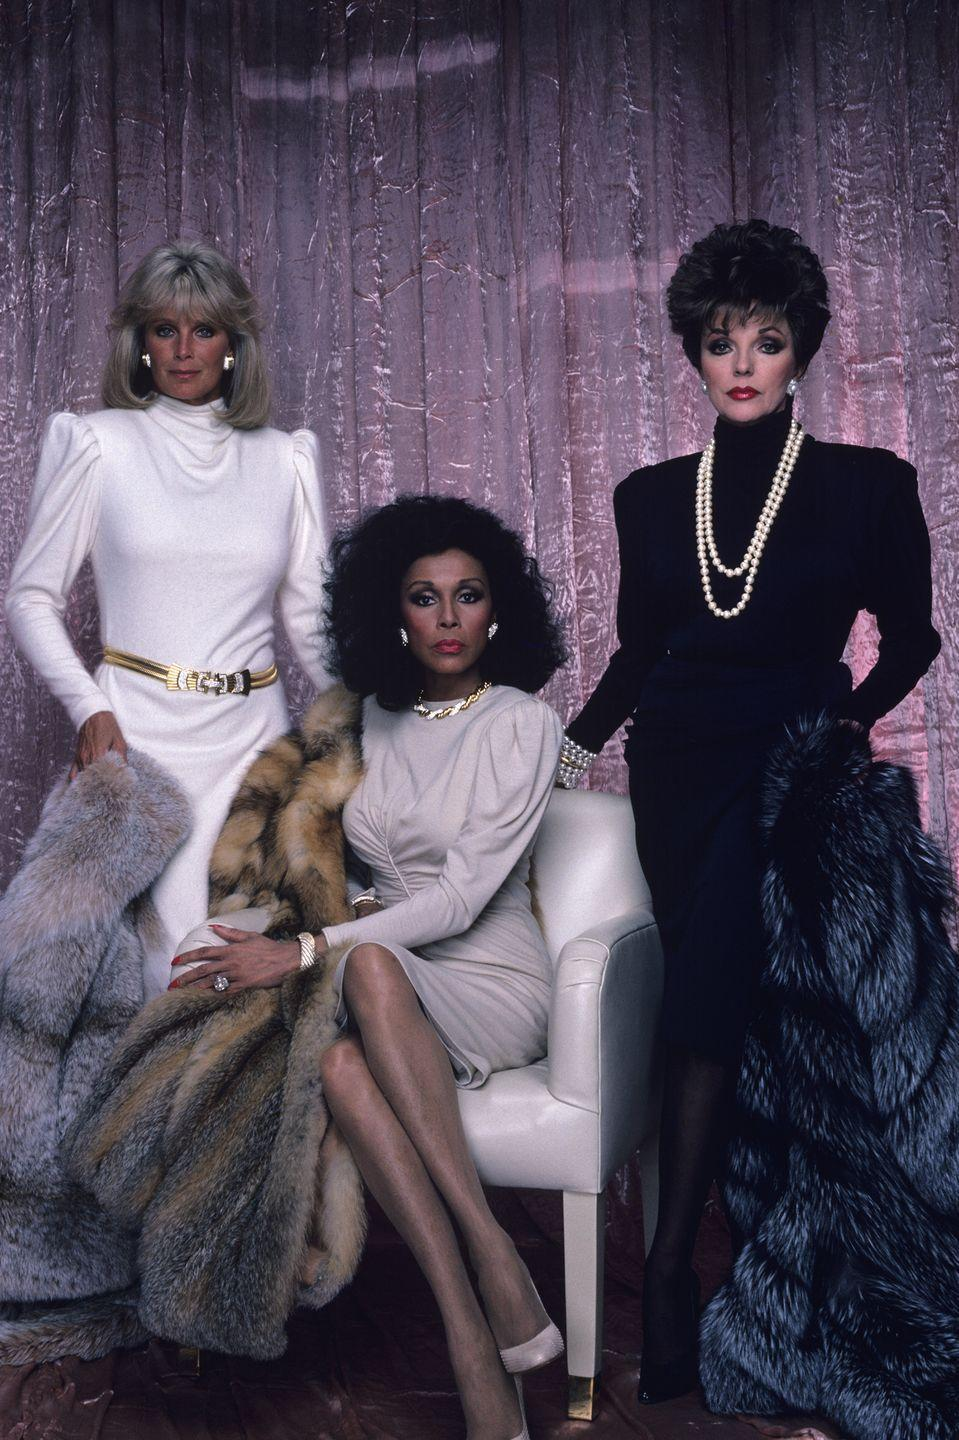 <p>Linda Evans, Diahann Carroll, and Joan Collins wearing shoulder pad dresses, pearls, and fur coats in a <em>Dynasty </em>promo photo.</p>